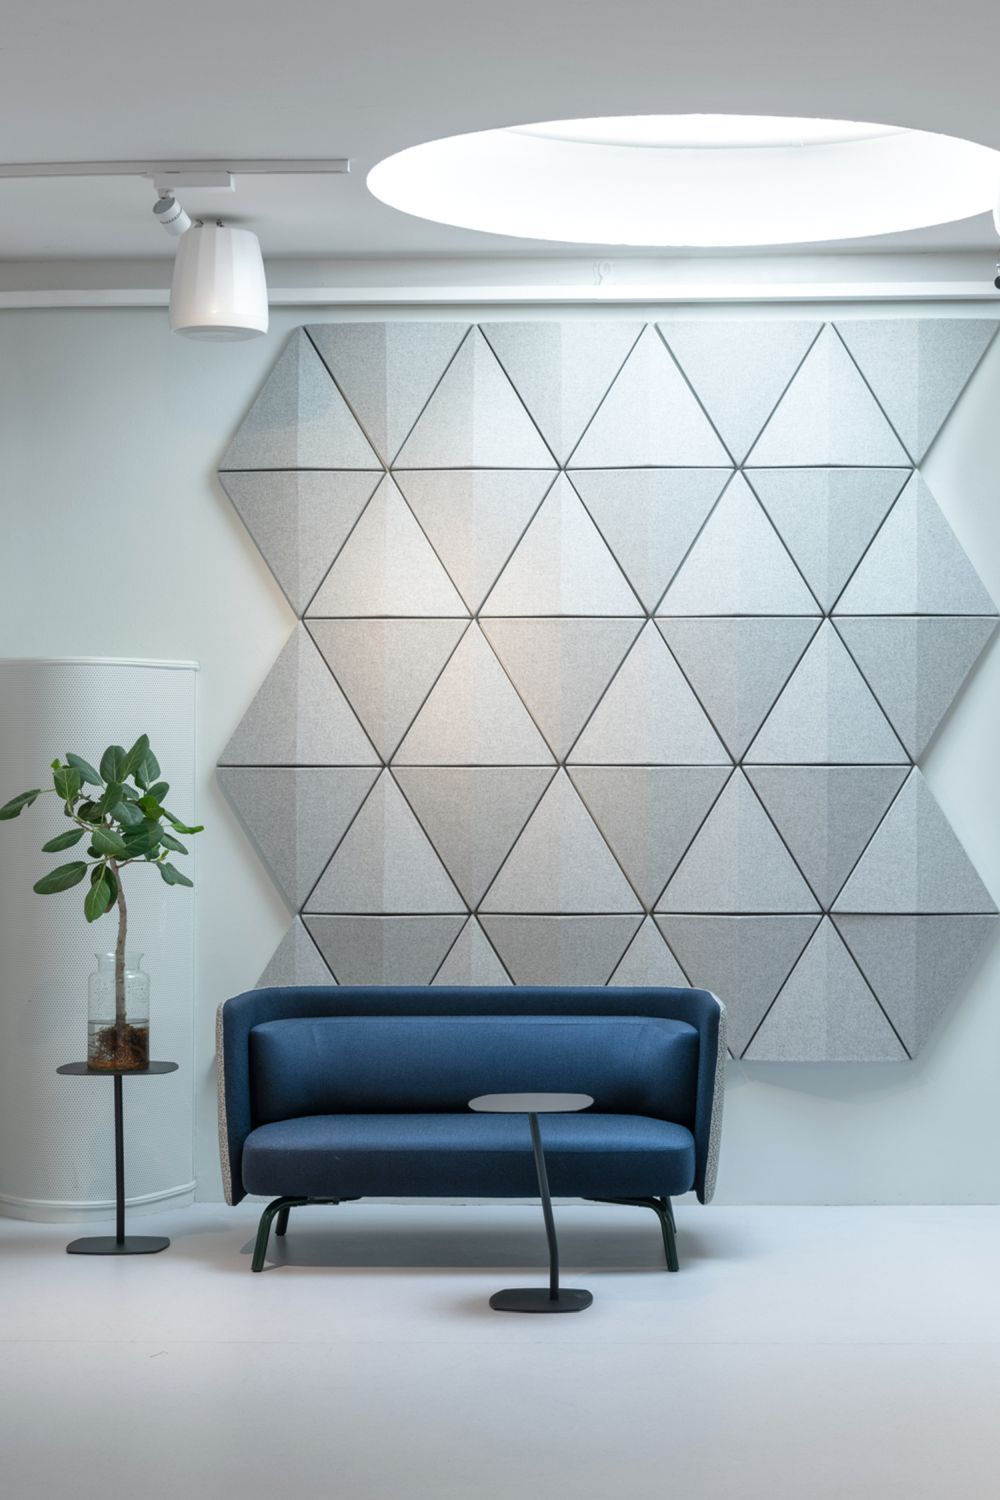 Cool Decorative Panels With Sound Absorbing Qualities Wall Panel Design Acoustic Wall Panels Wall Decor Design